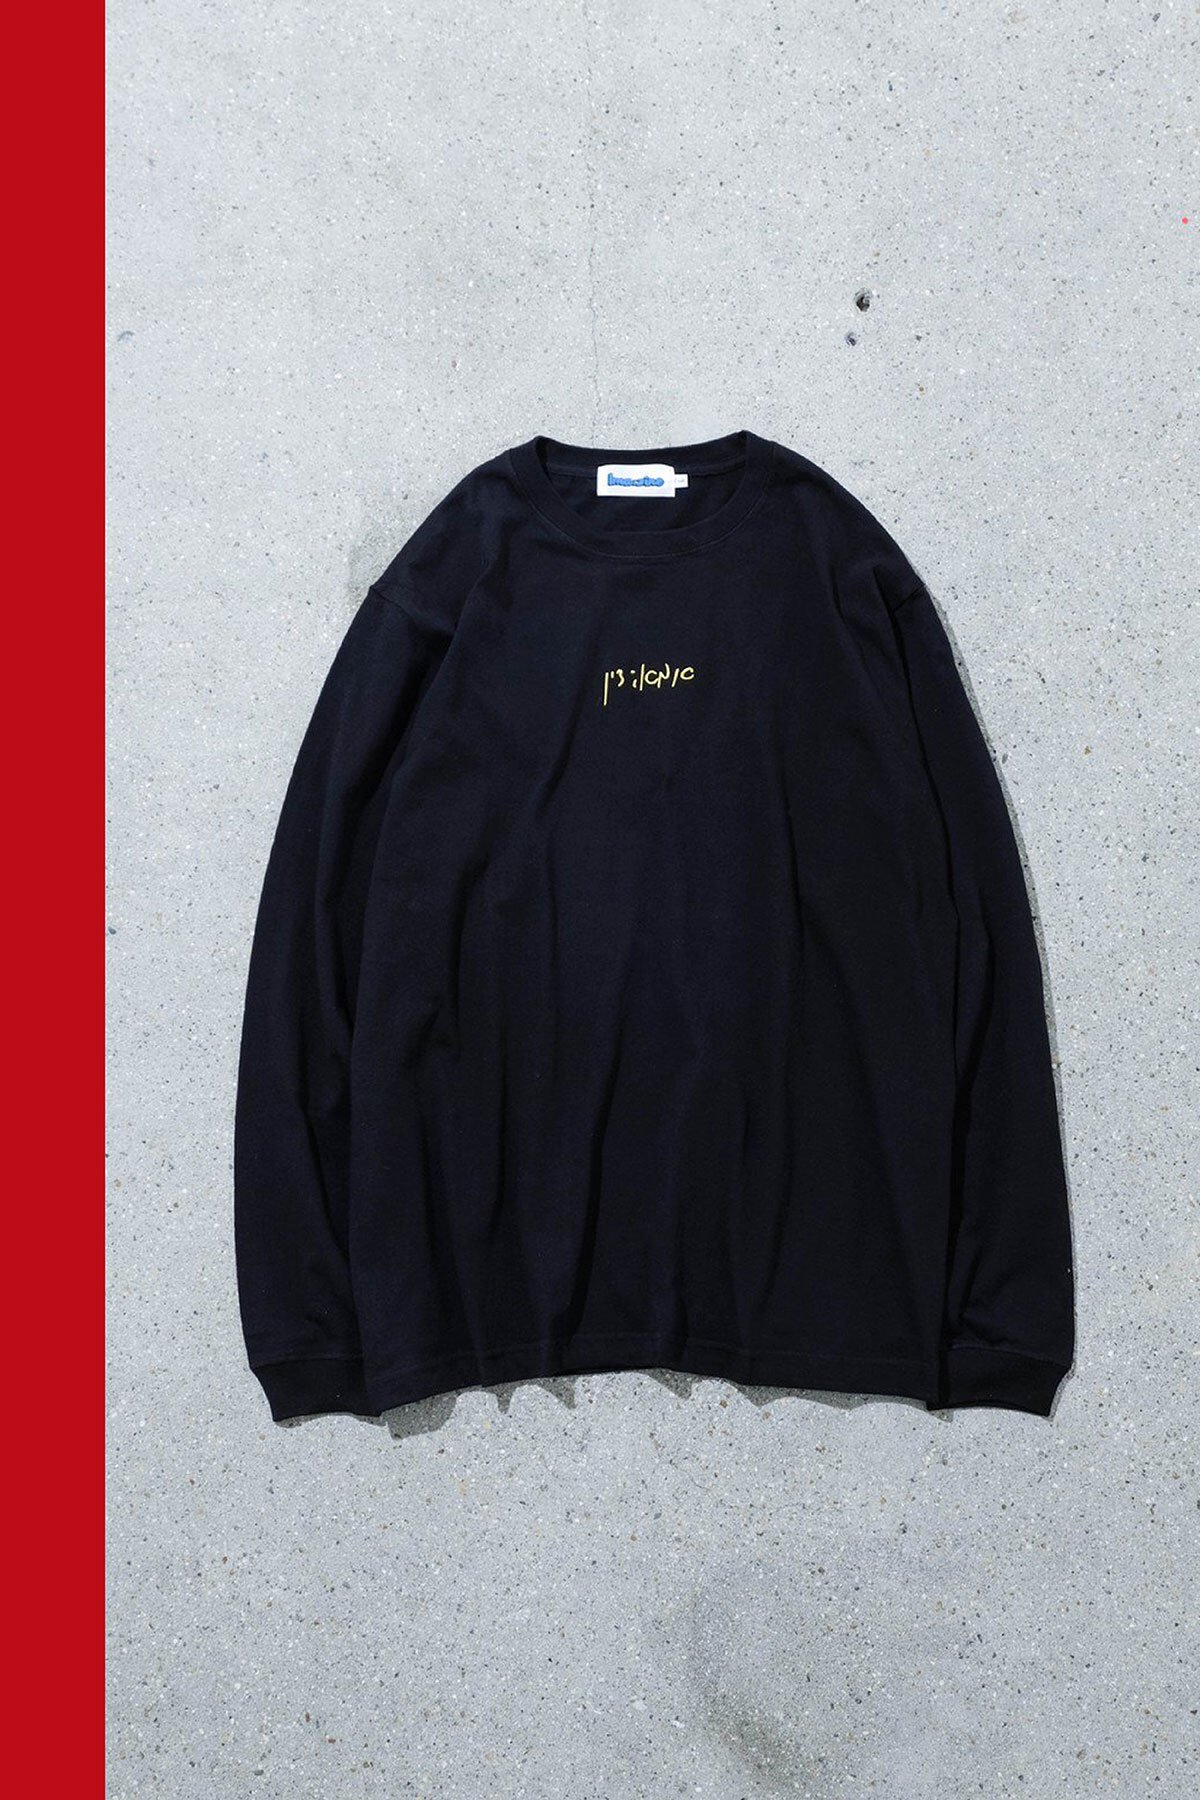 NOTeBOOK JOINT PROJECT / LONG SLEEVE T-SHIRT